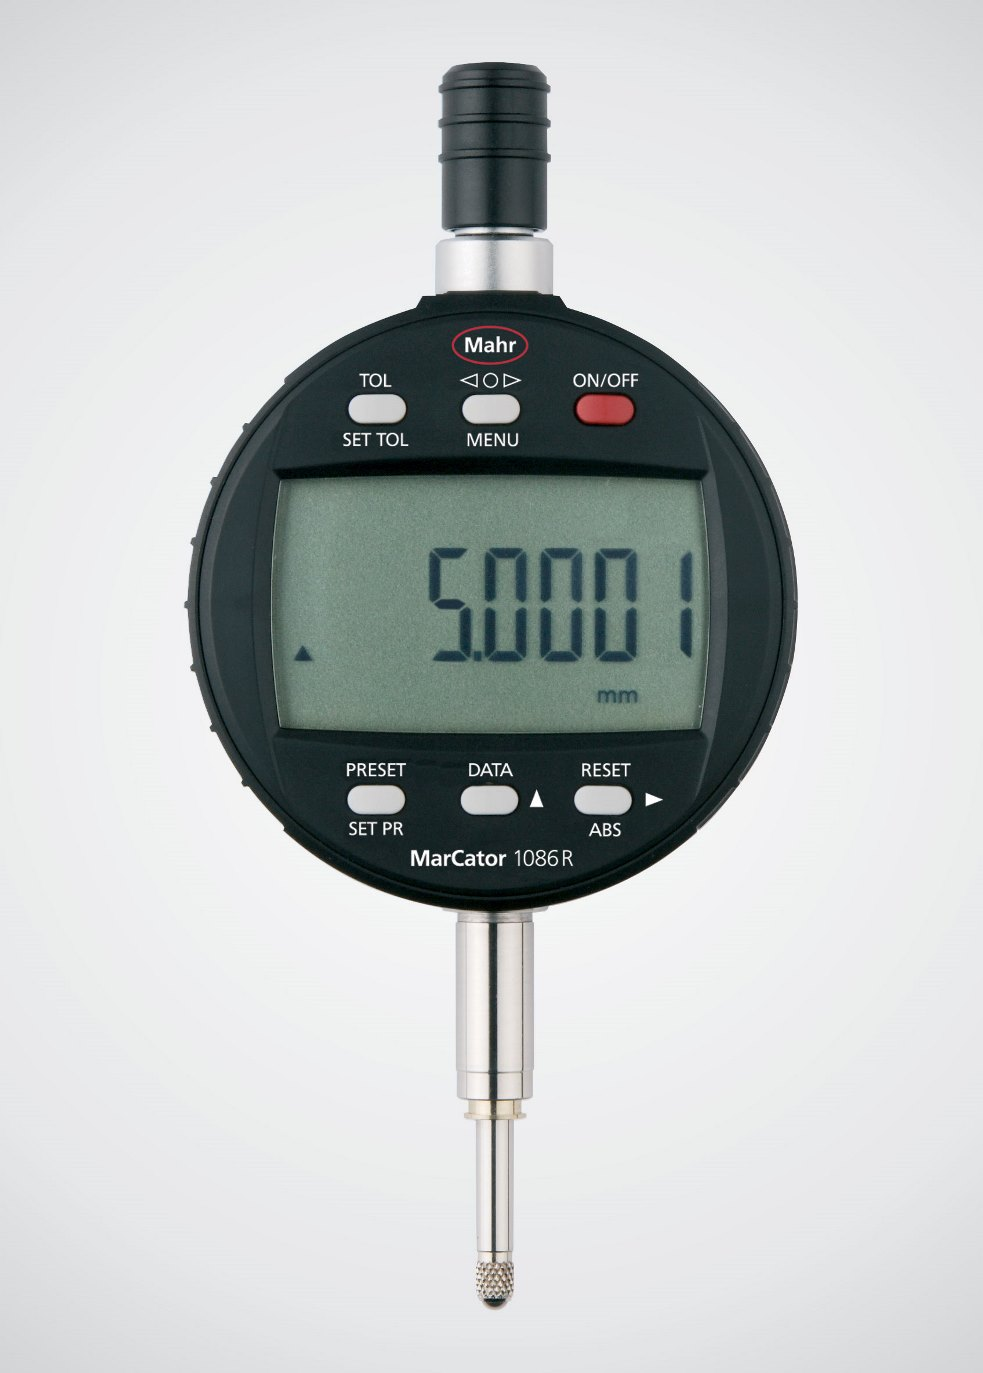 Mahr Introduces New High Resolution Digital Indicators